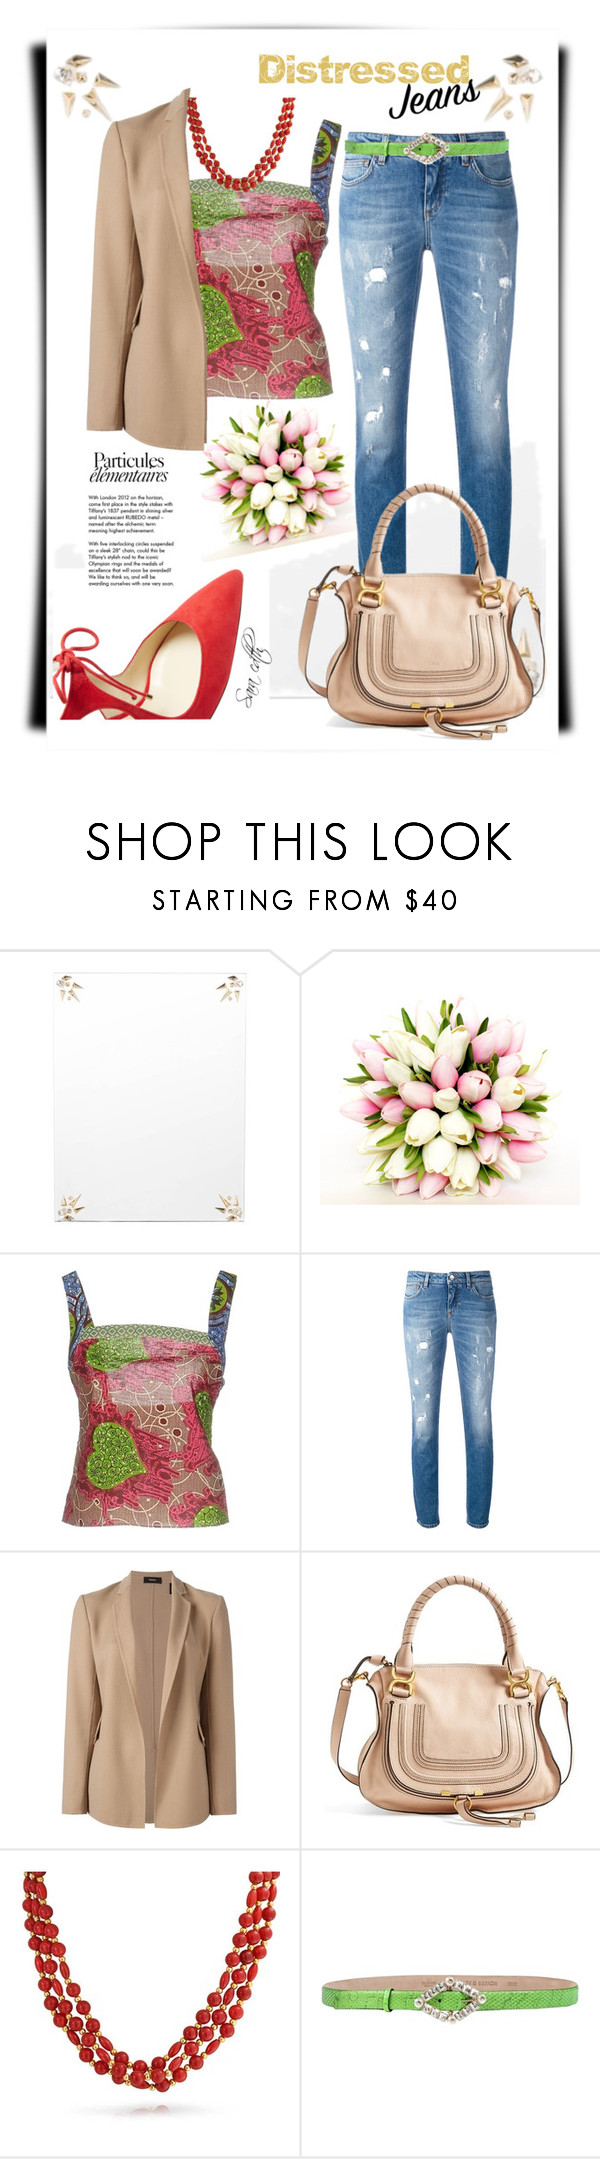 """""""Denim elegance"""" by sara-cdth ❤ liked on Polyvore featuring Alexis Bittar, Moschino Cheap & Chic, Dolce&Gabbana, Theory, Chloé, Bling Jewelry, Valentino and Tiffany & Co."""